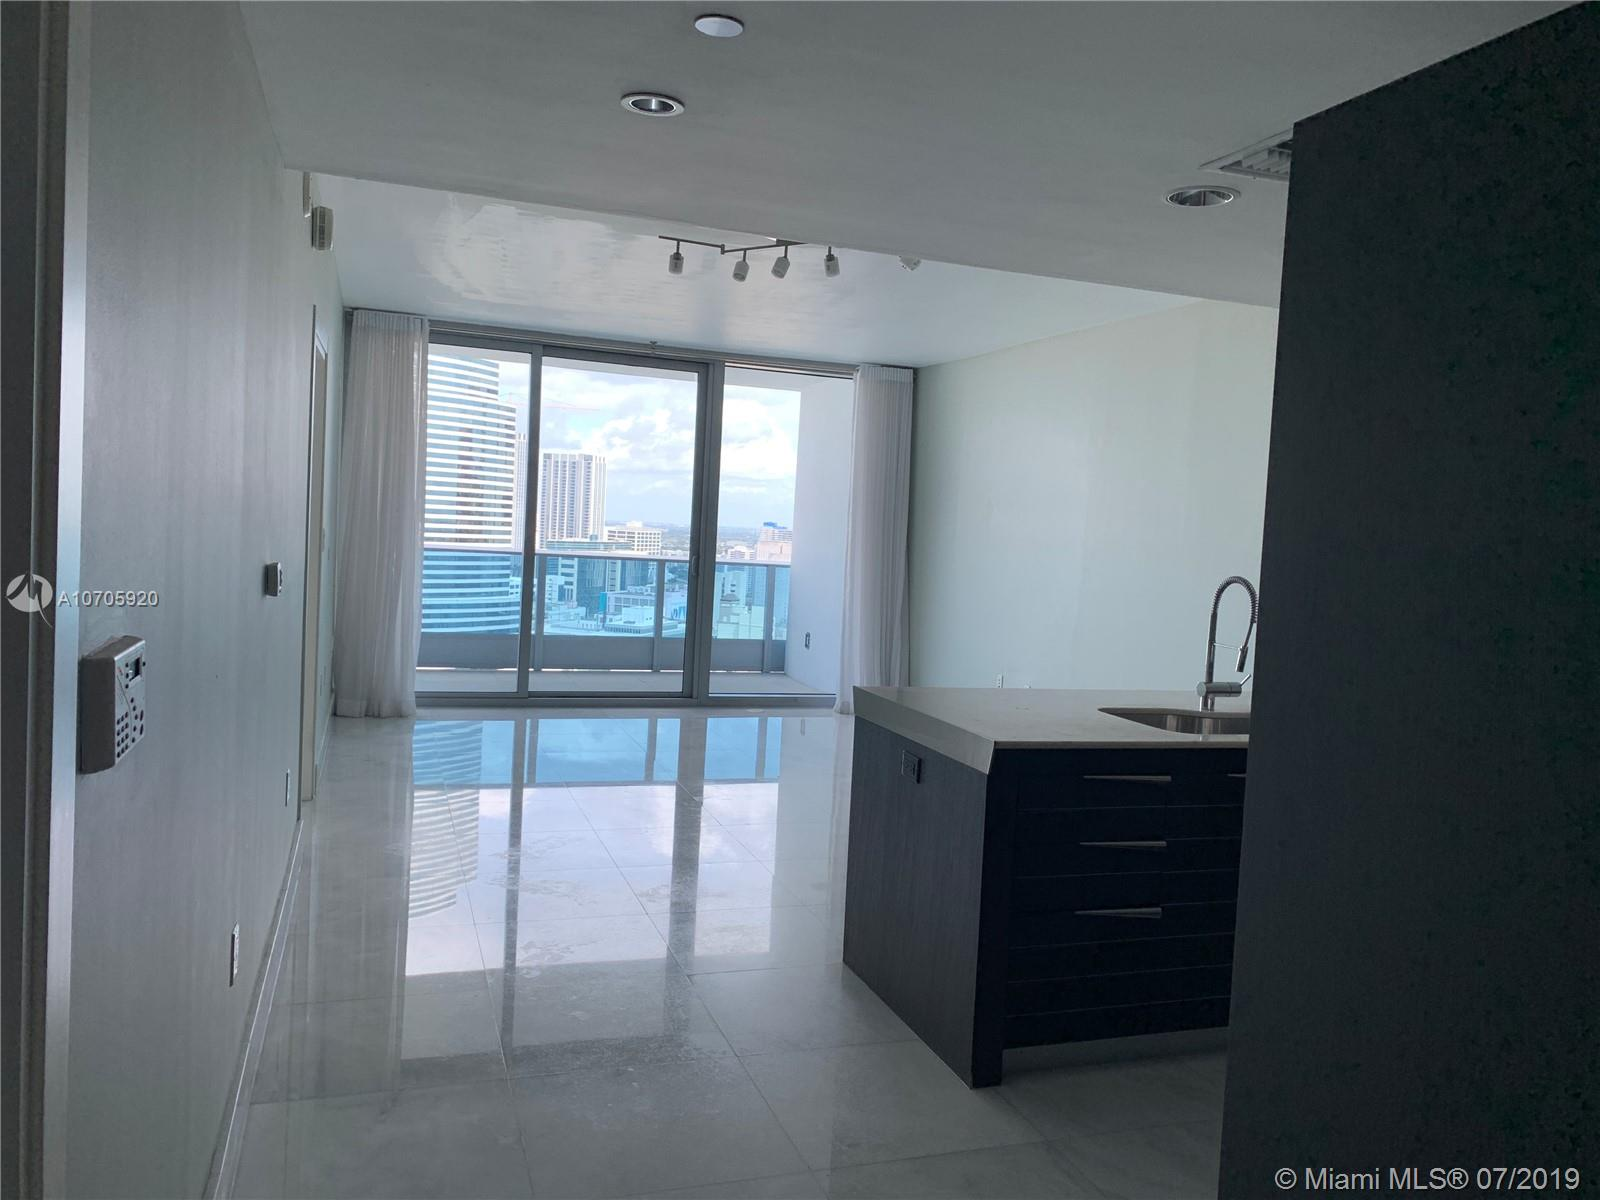 Very desirable 1 large bedroom at Epic .All marble floors with Italian Kitchen with all California closets at bedroom.Perfect for first time buyers!Very easy to show.Call L/A